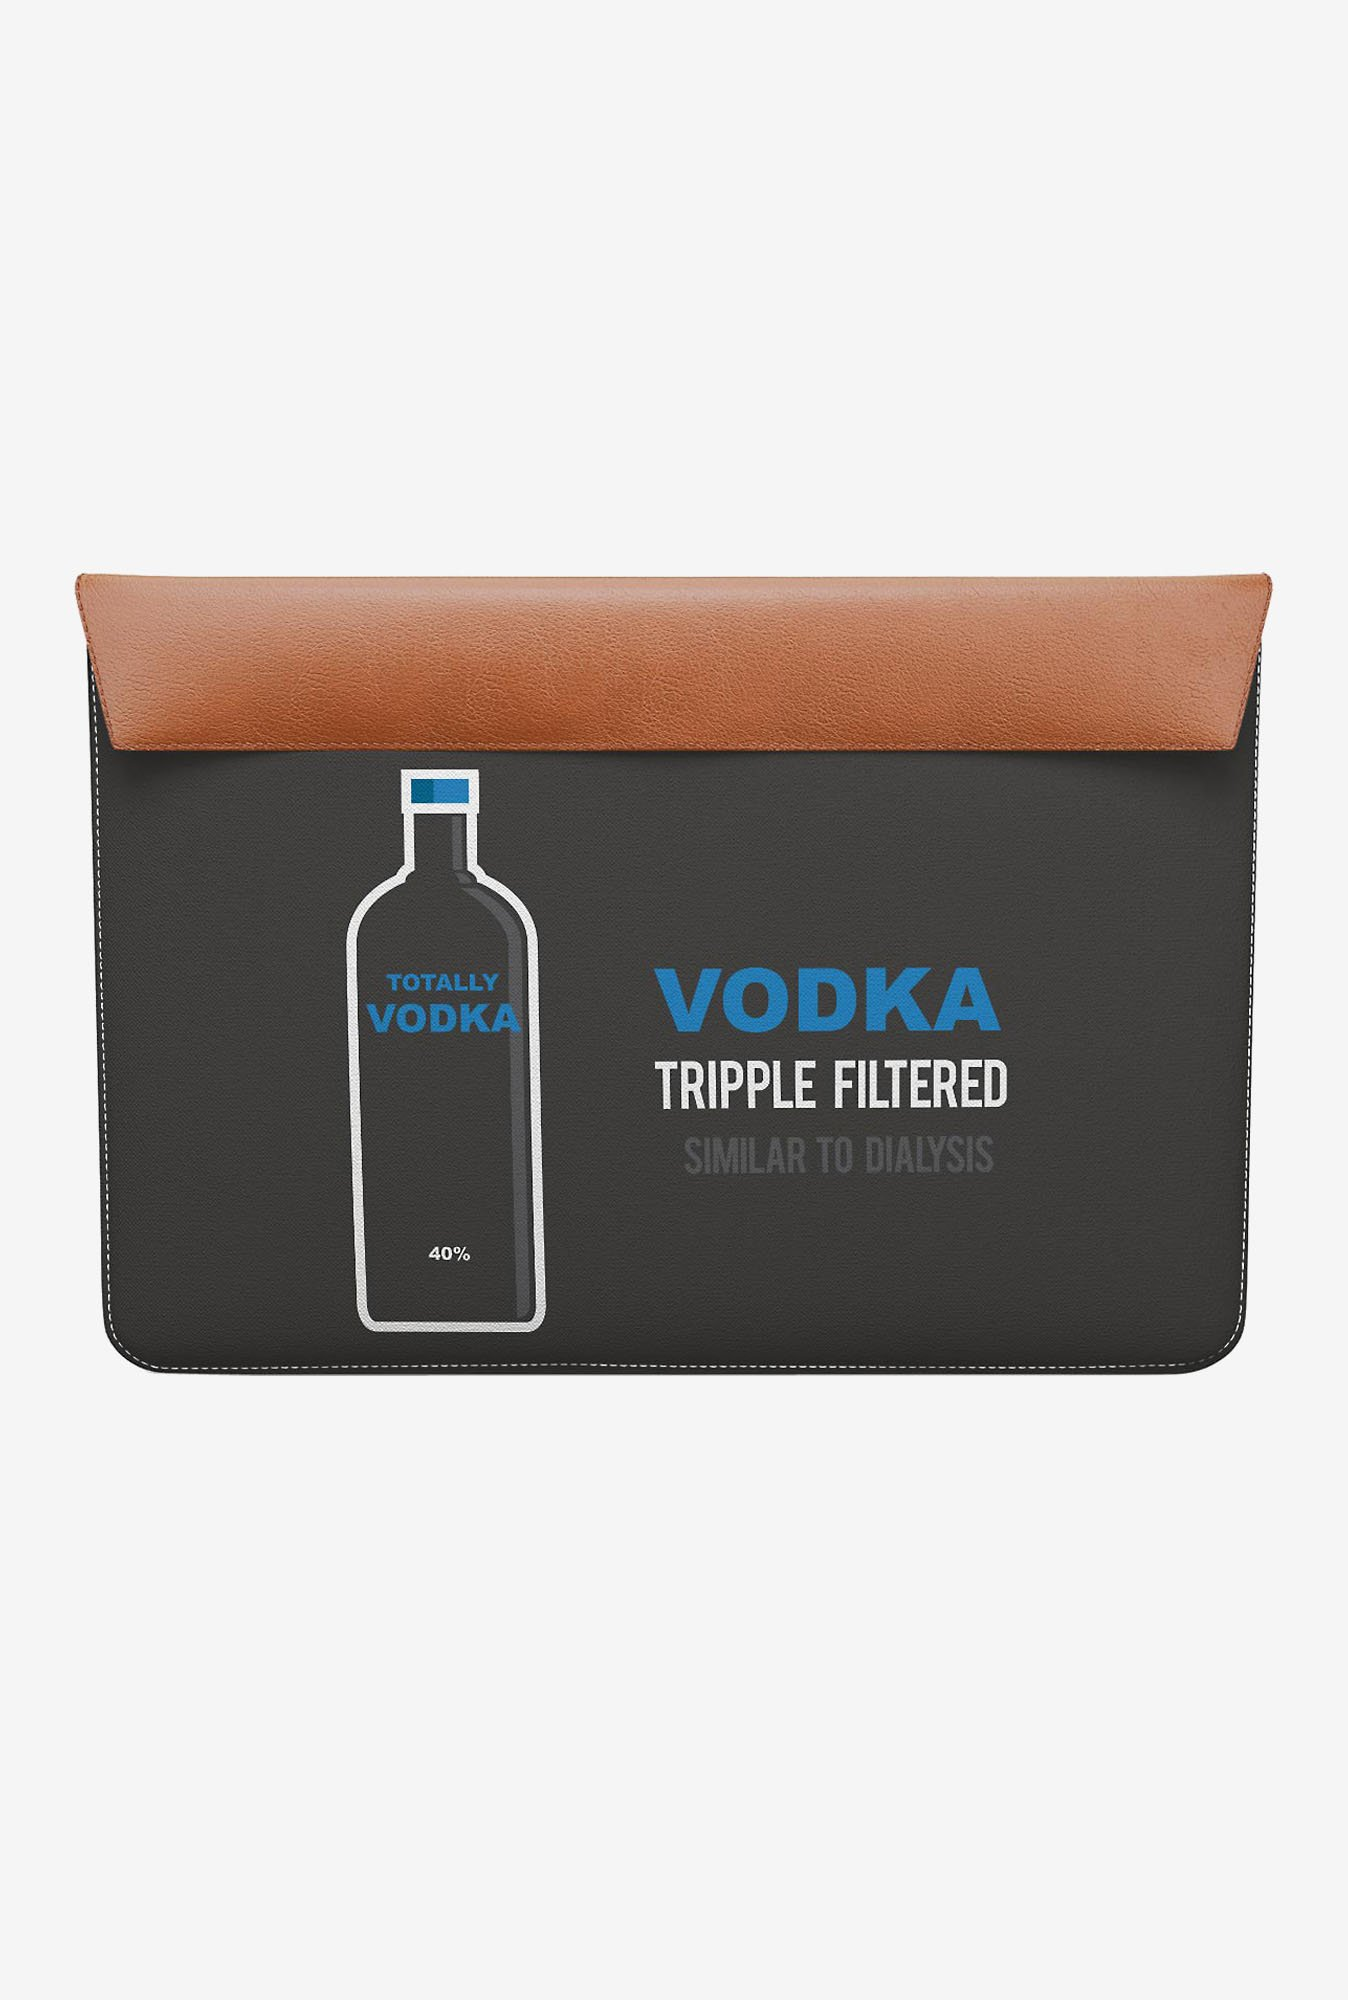 DailyObjects Vodka Bottle MacBook Air 13 Envelope Sleeve